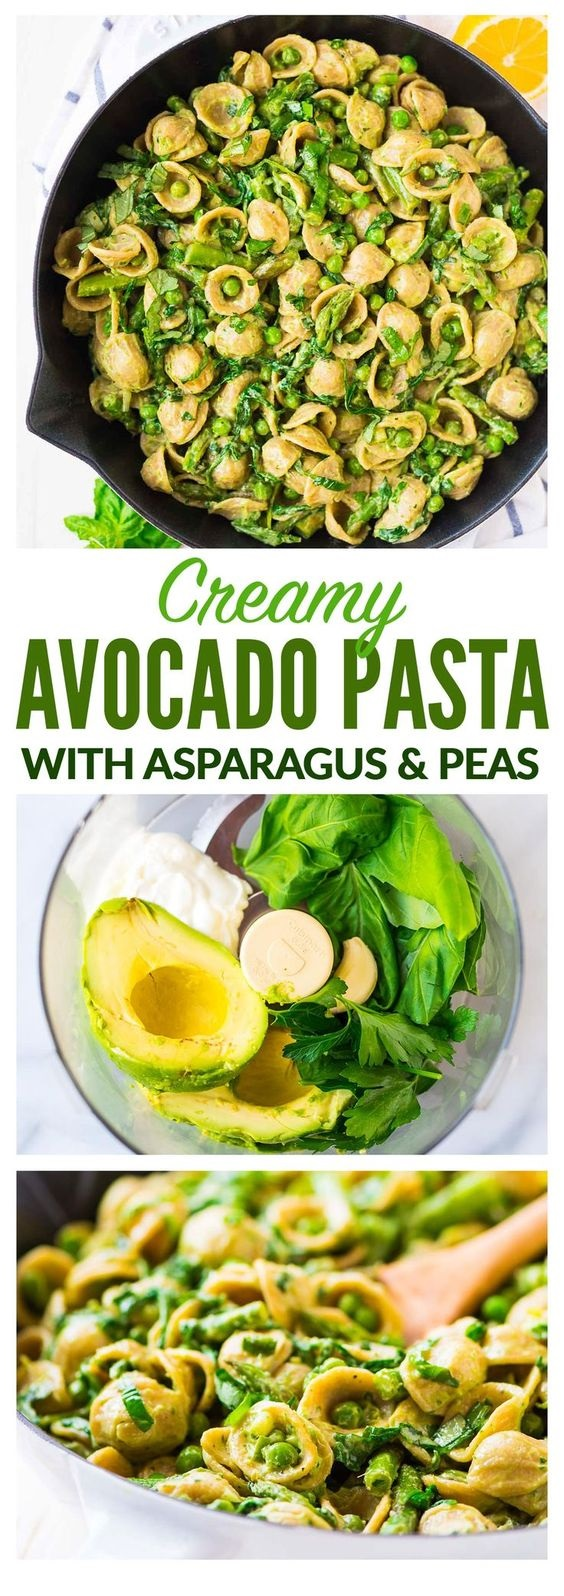 Avocado Pasta with Asparagus and Peas